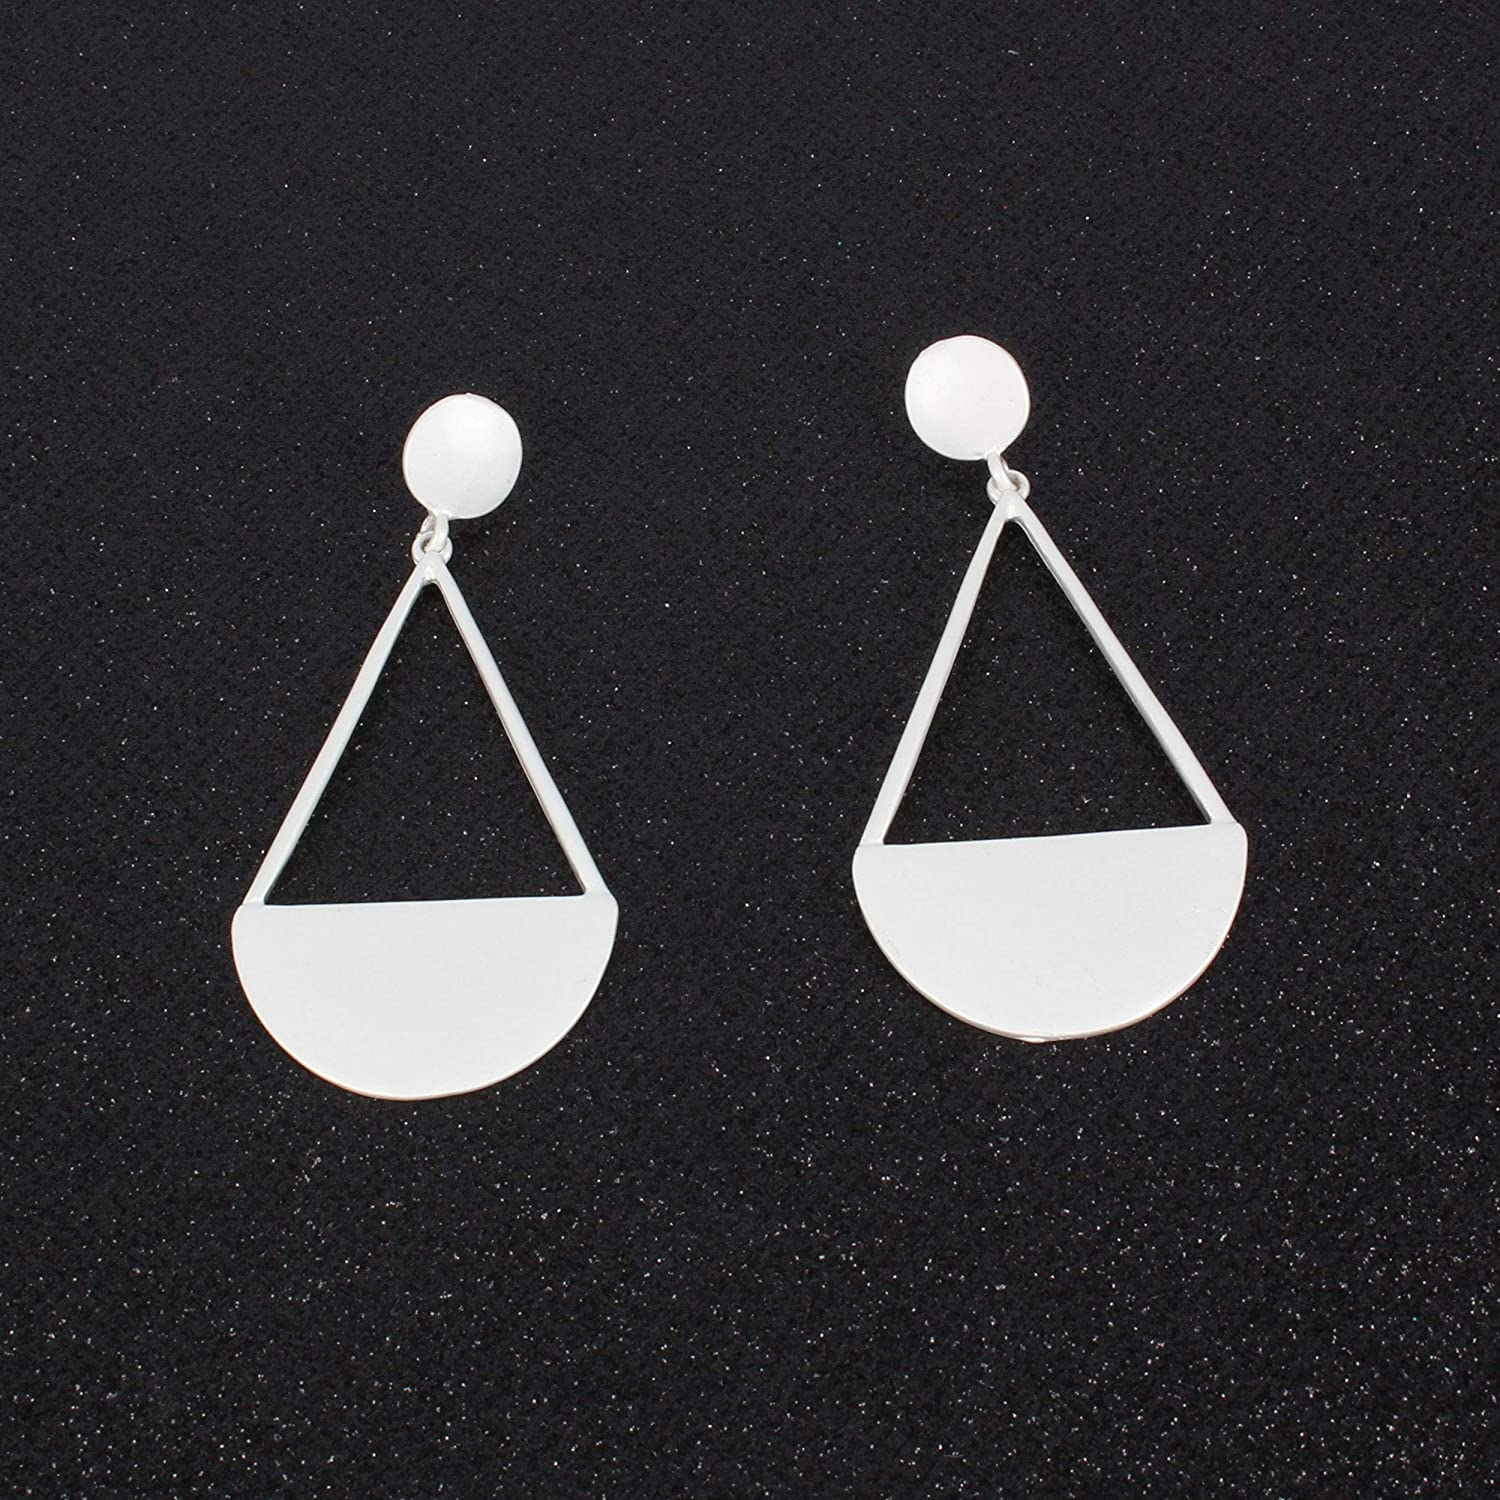 Bohemia Gold Silver Plated Geometric Drop Dangle Earrings For Women Statement Vintage Earrings Girls Fashion Jewelry